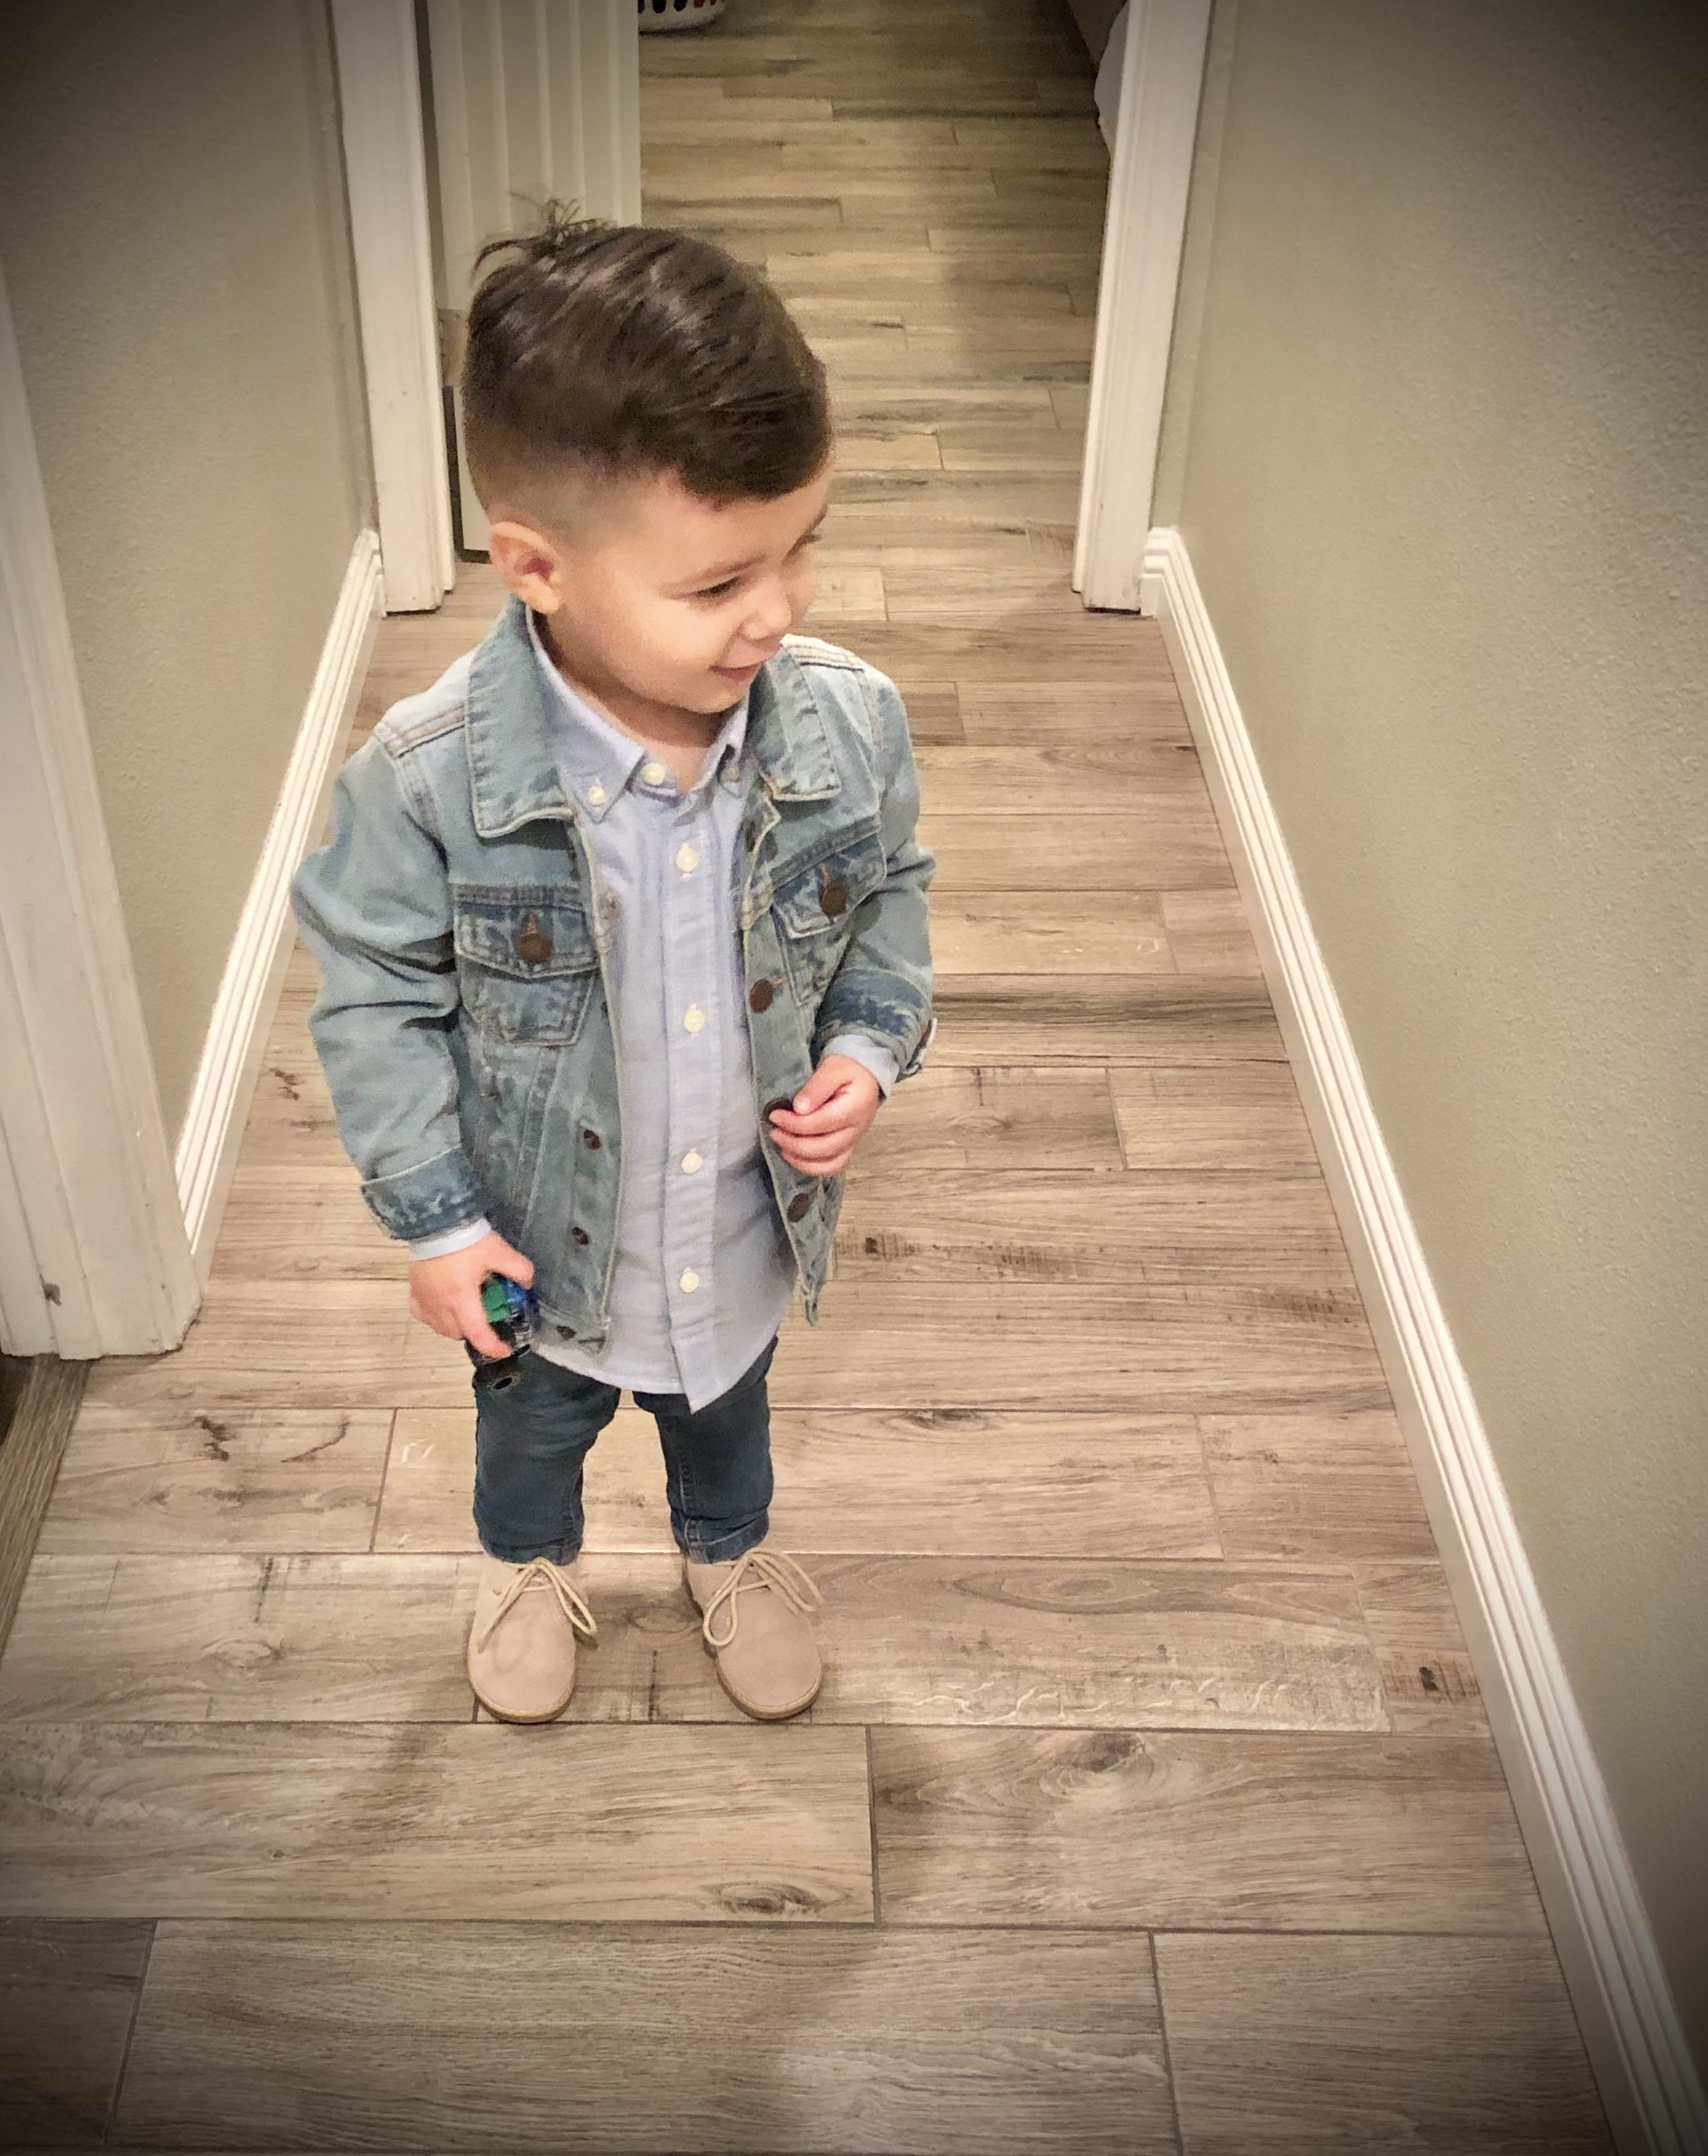 Quinn Denim Jacket Baby Toddler Kids Clothing Trendy Boy Outfits Boys Fall Outfits Baby Boy Fashion [ 3013 x 2387 Pixel ]